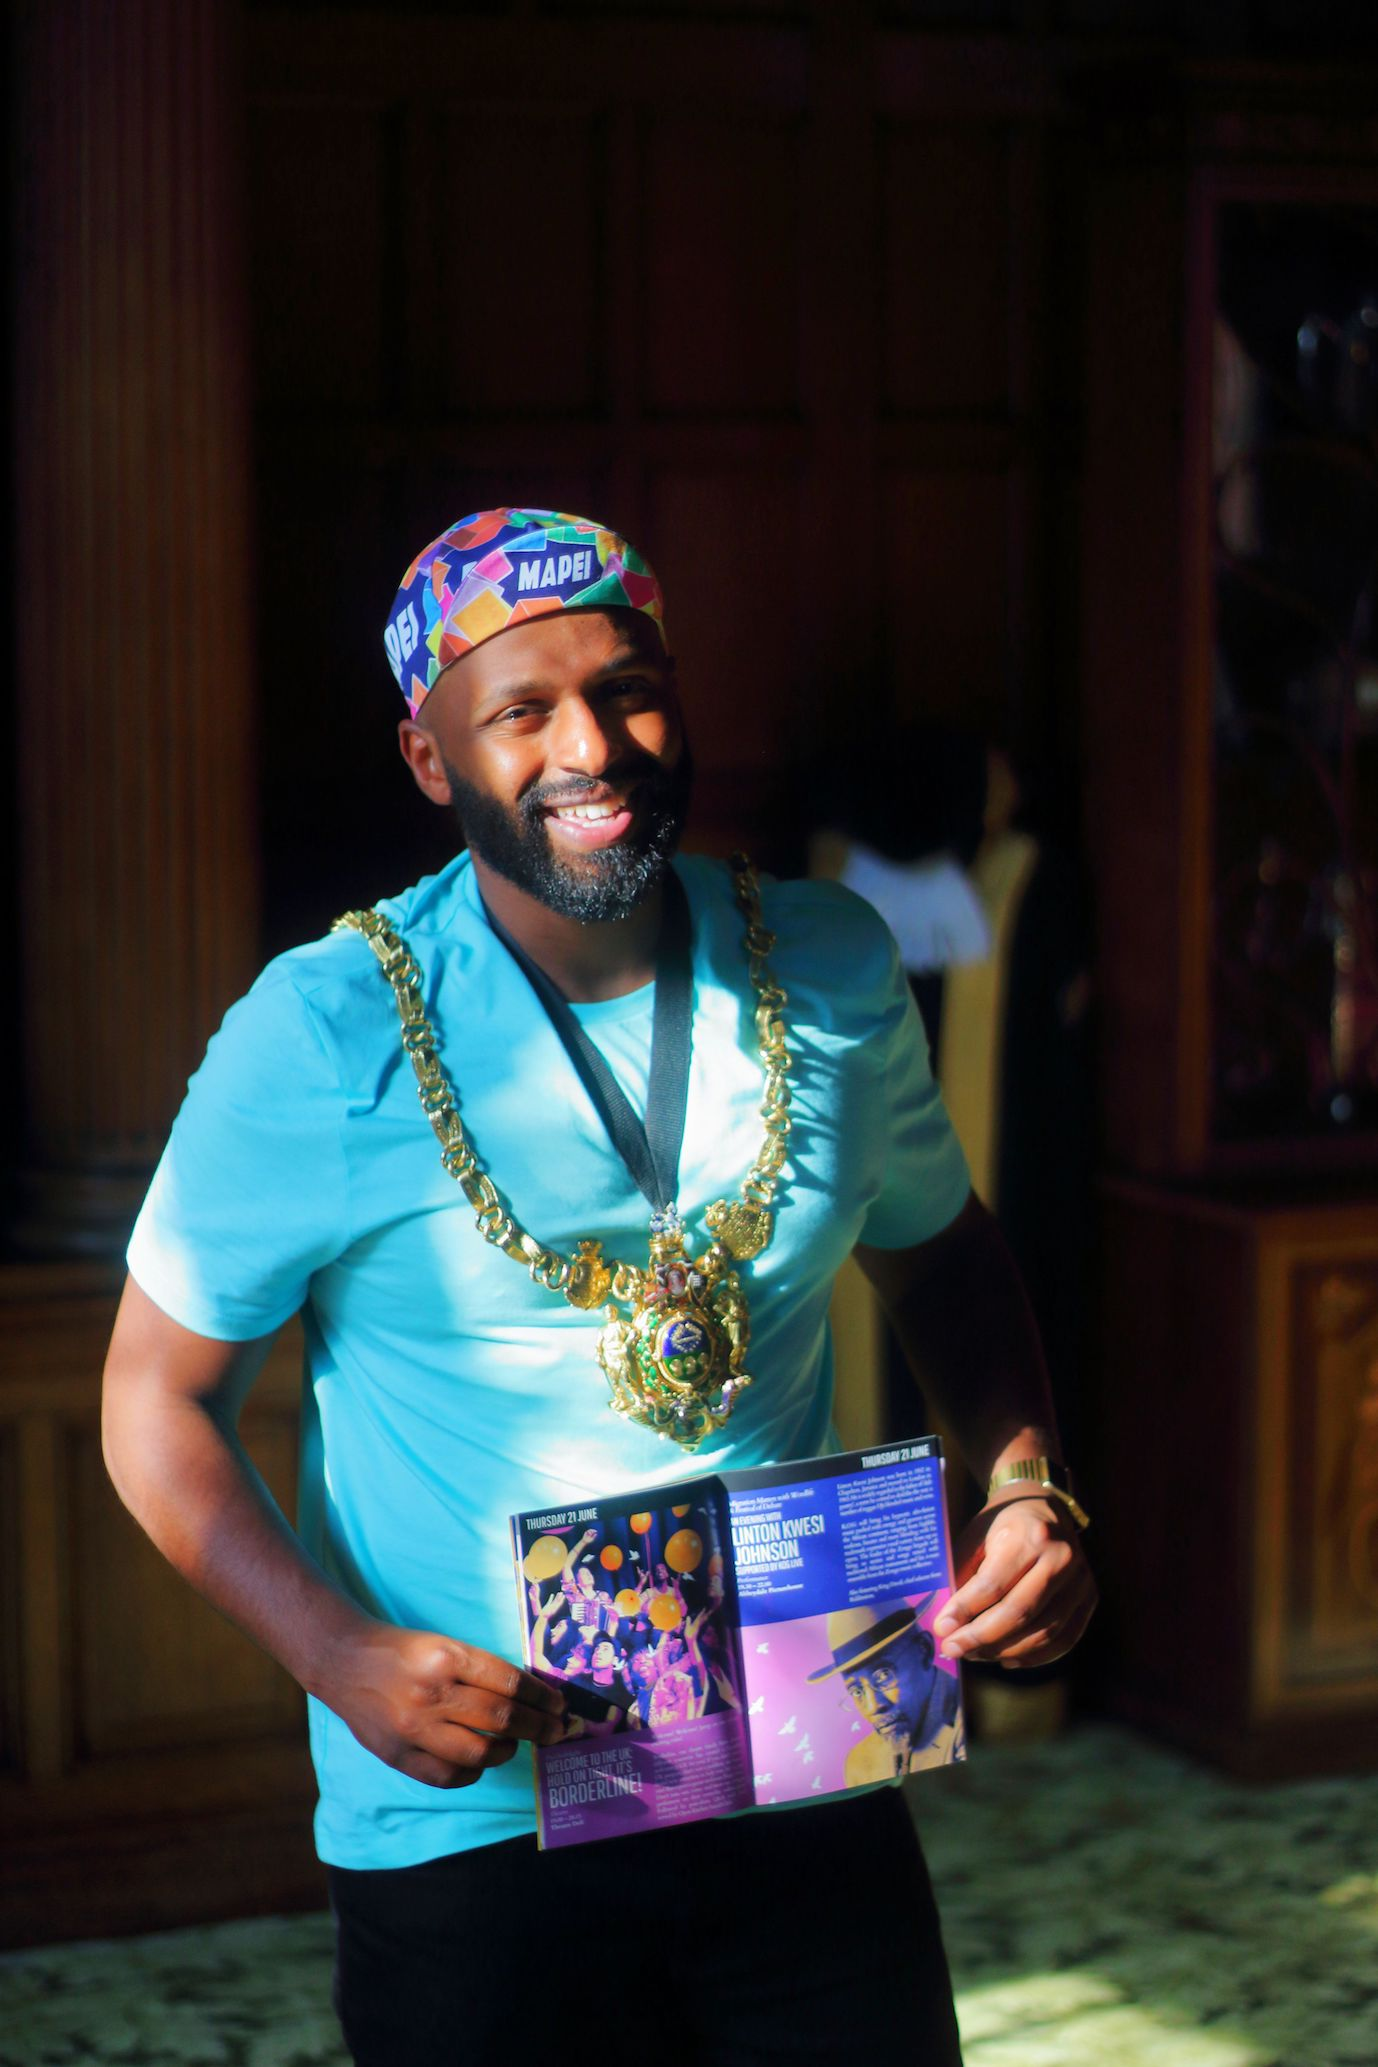 Lord Mayor of Sheffield Magid Magid with the Migration Matters Festival 2018 brochure